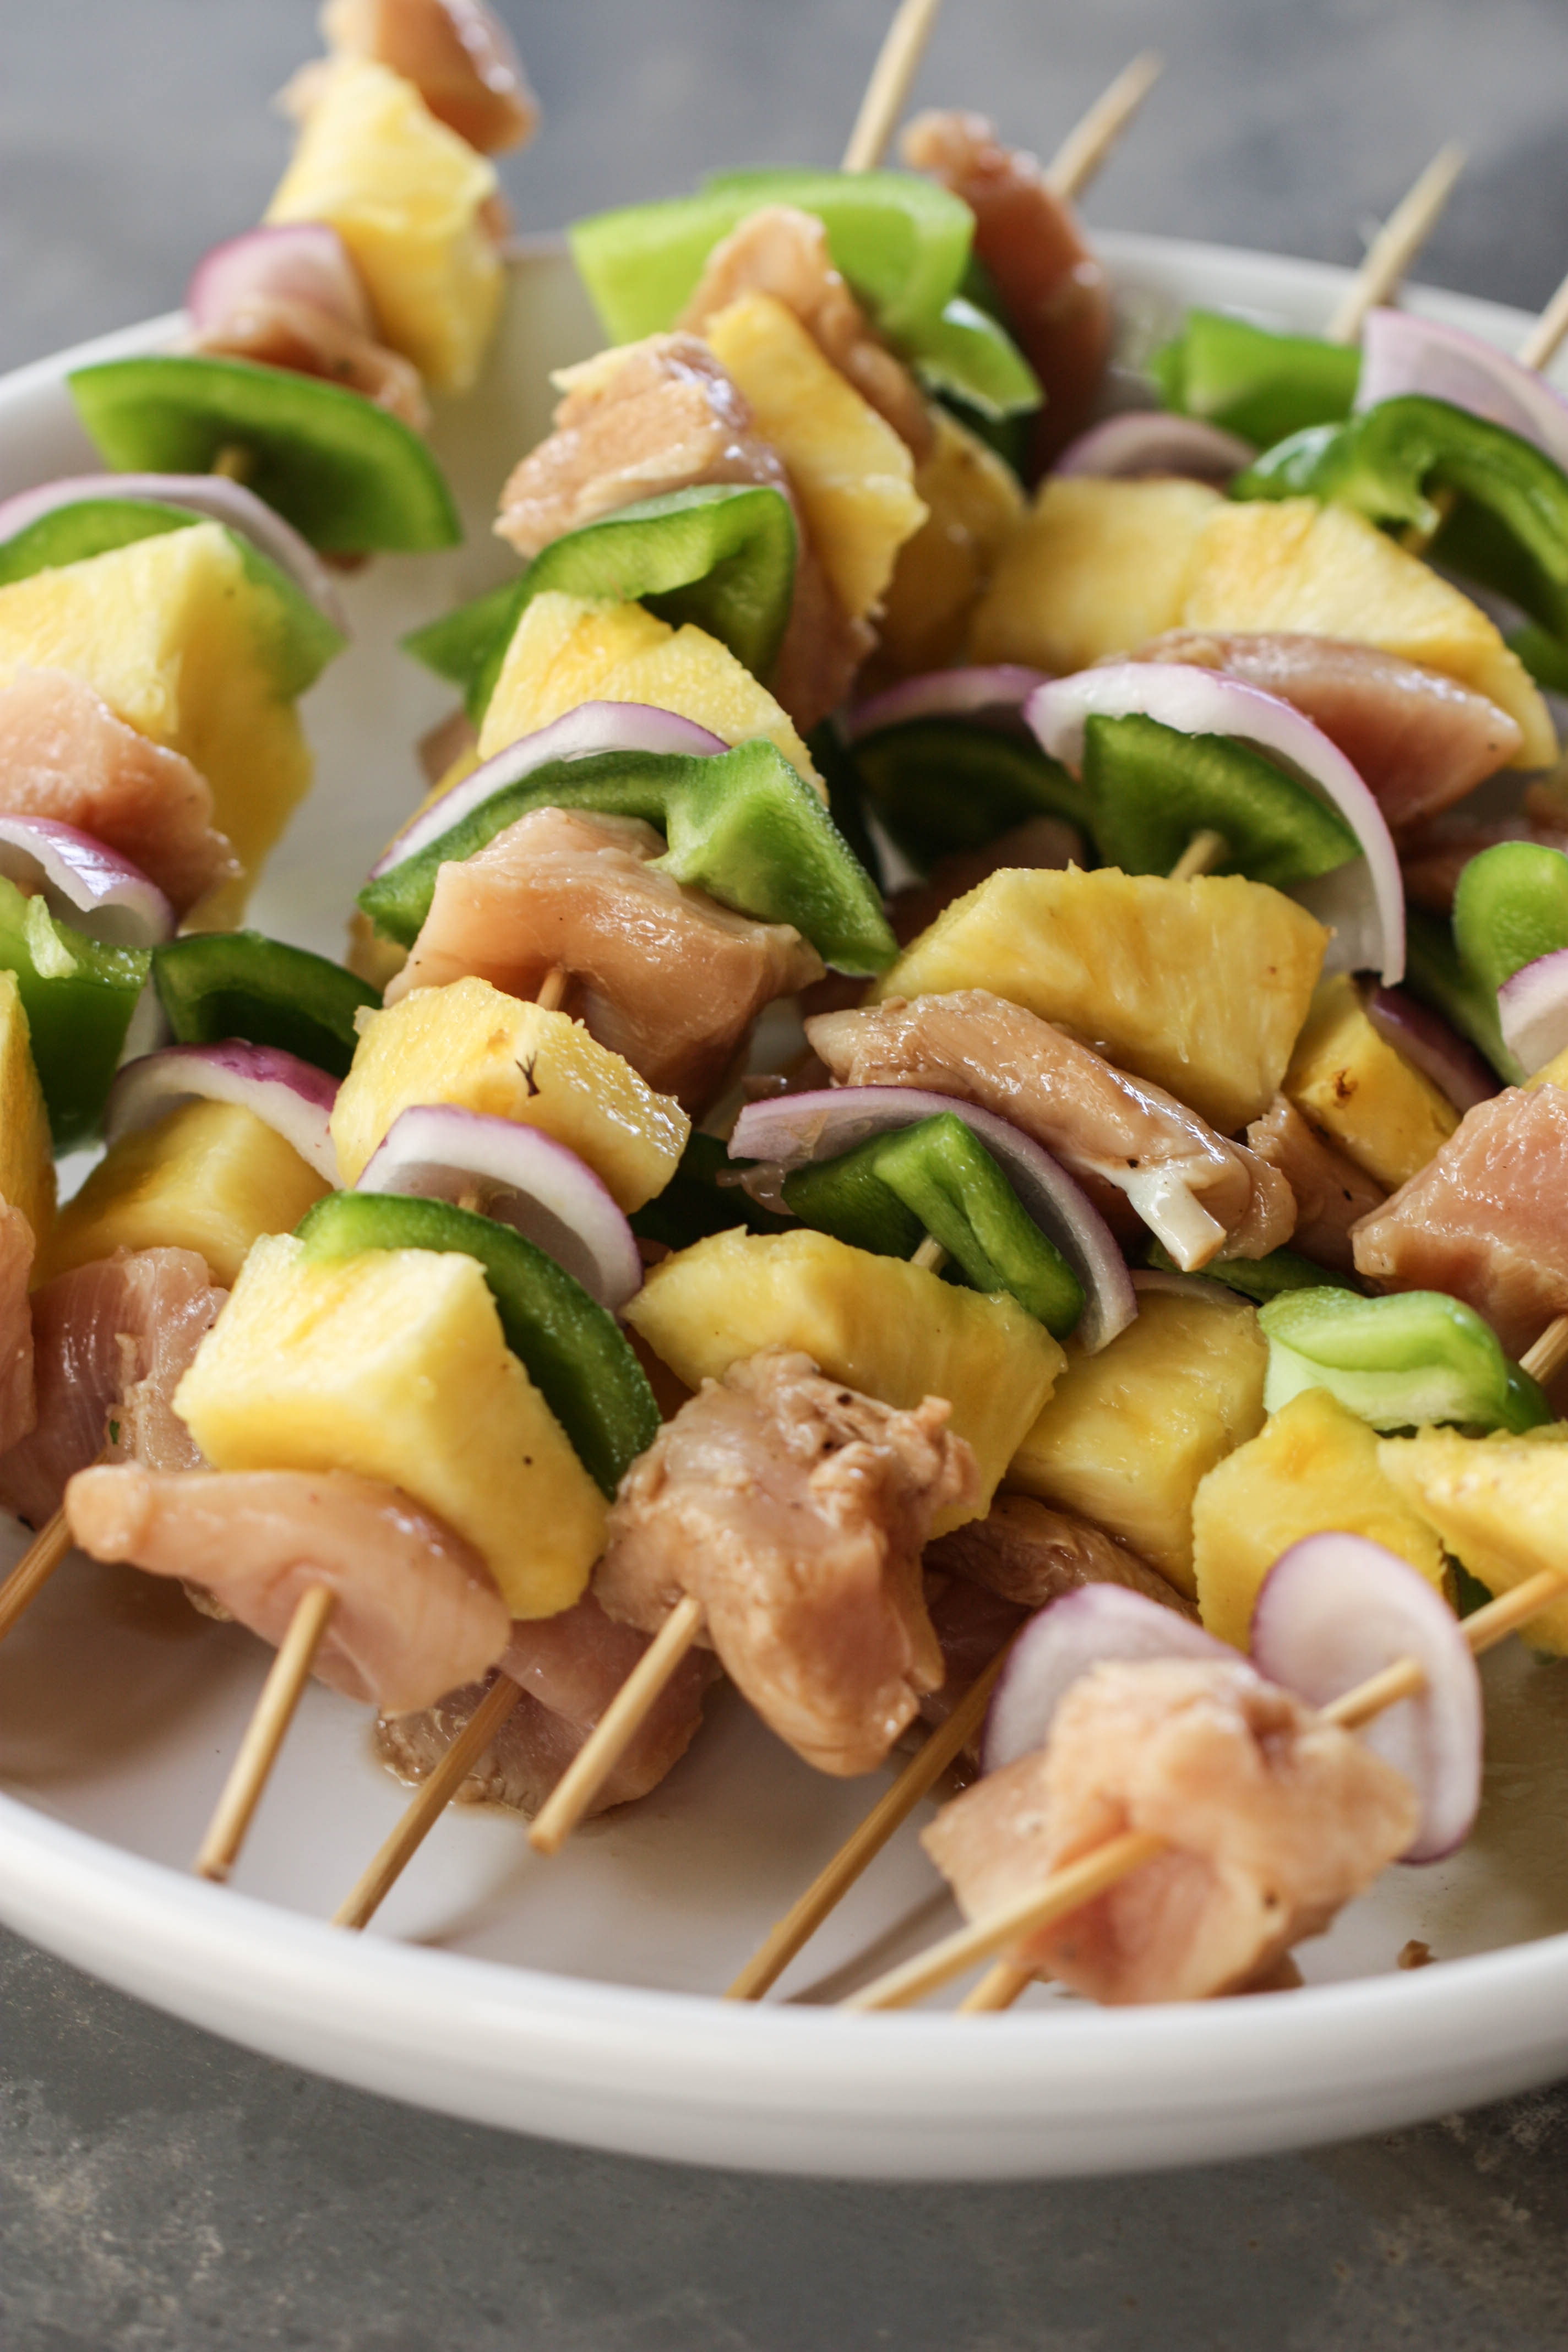 Raw Grilled Island Chicken Kabobs on a white plate